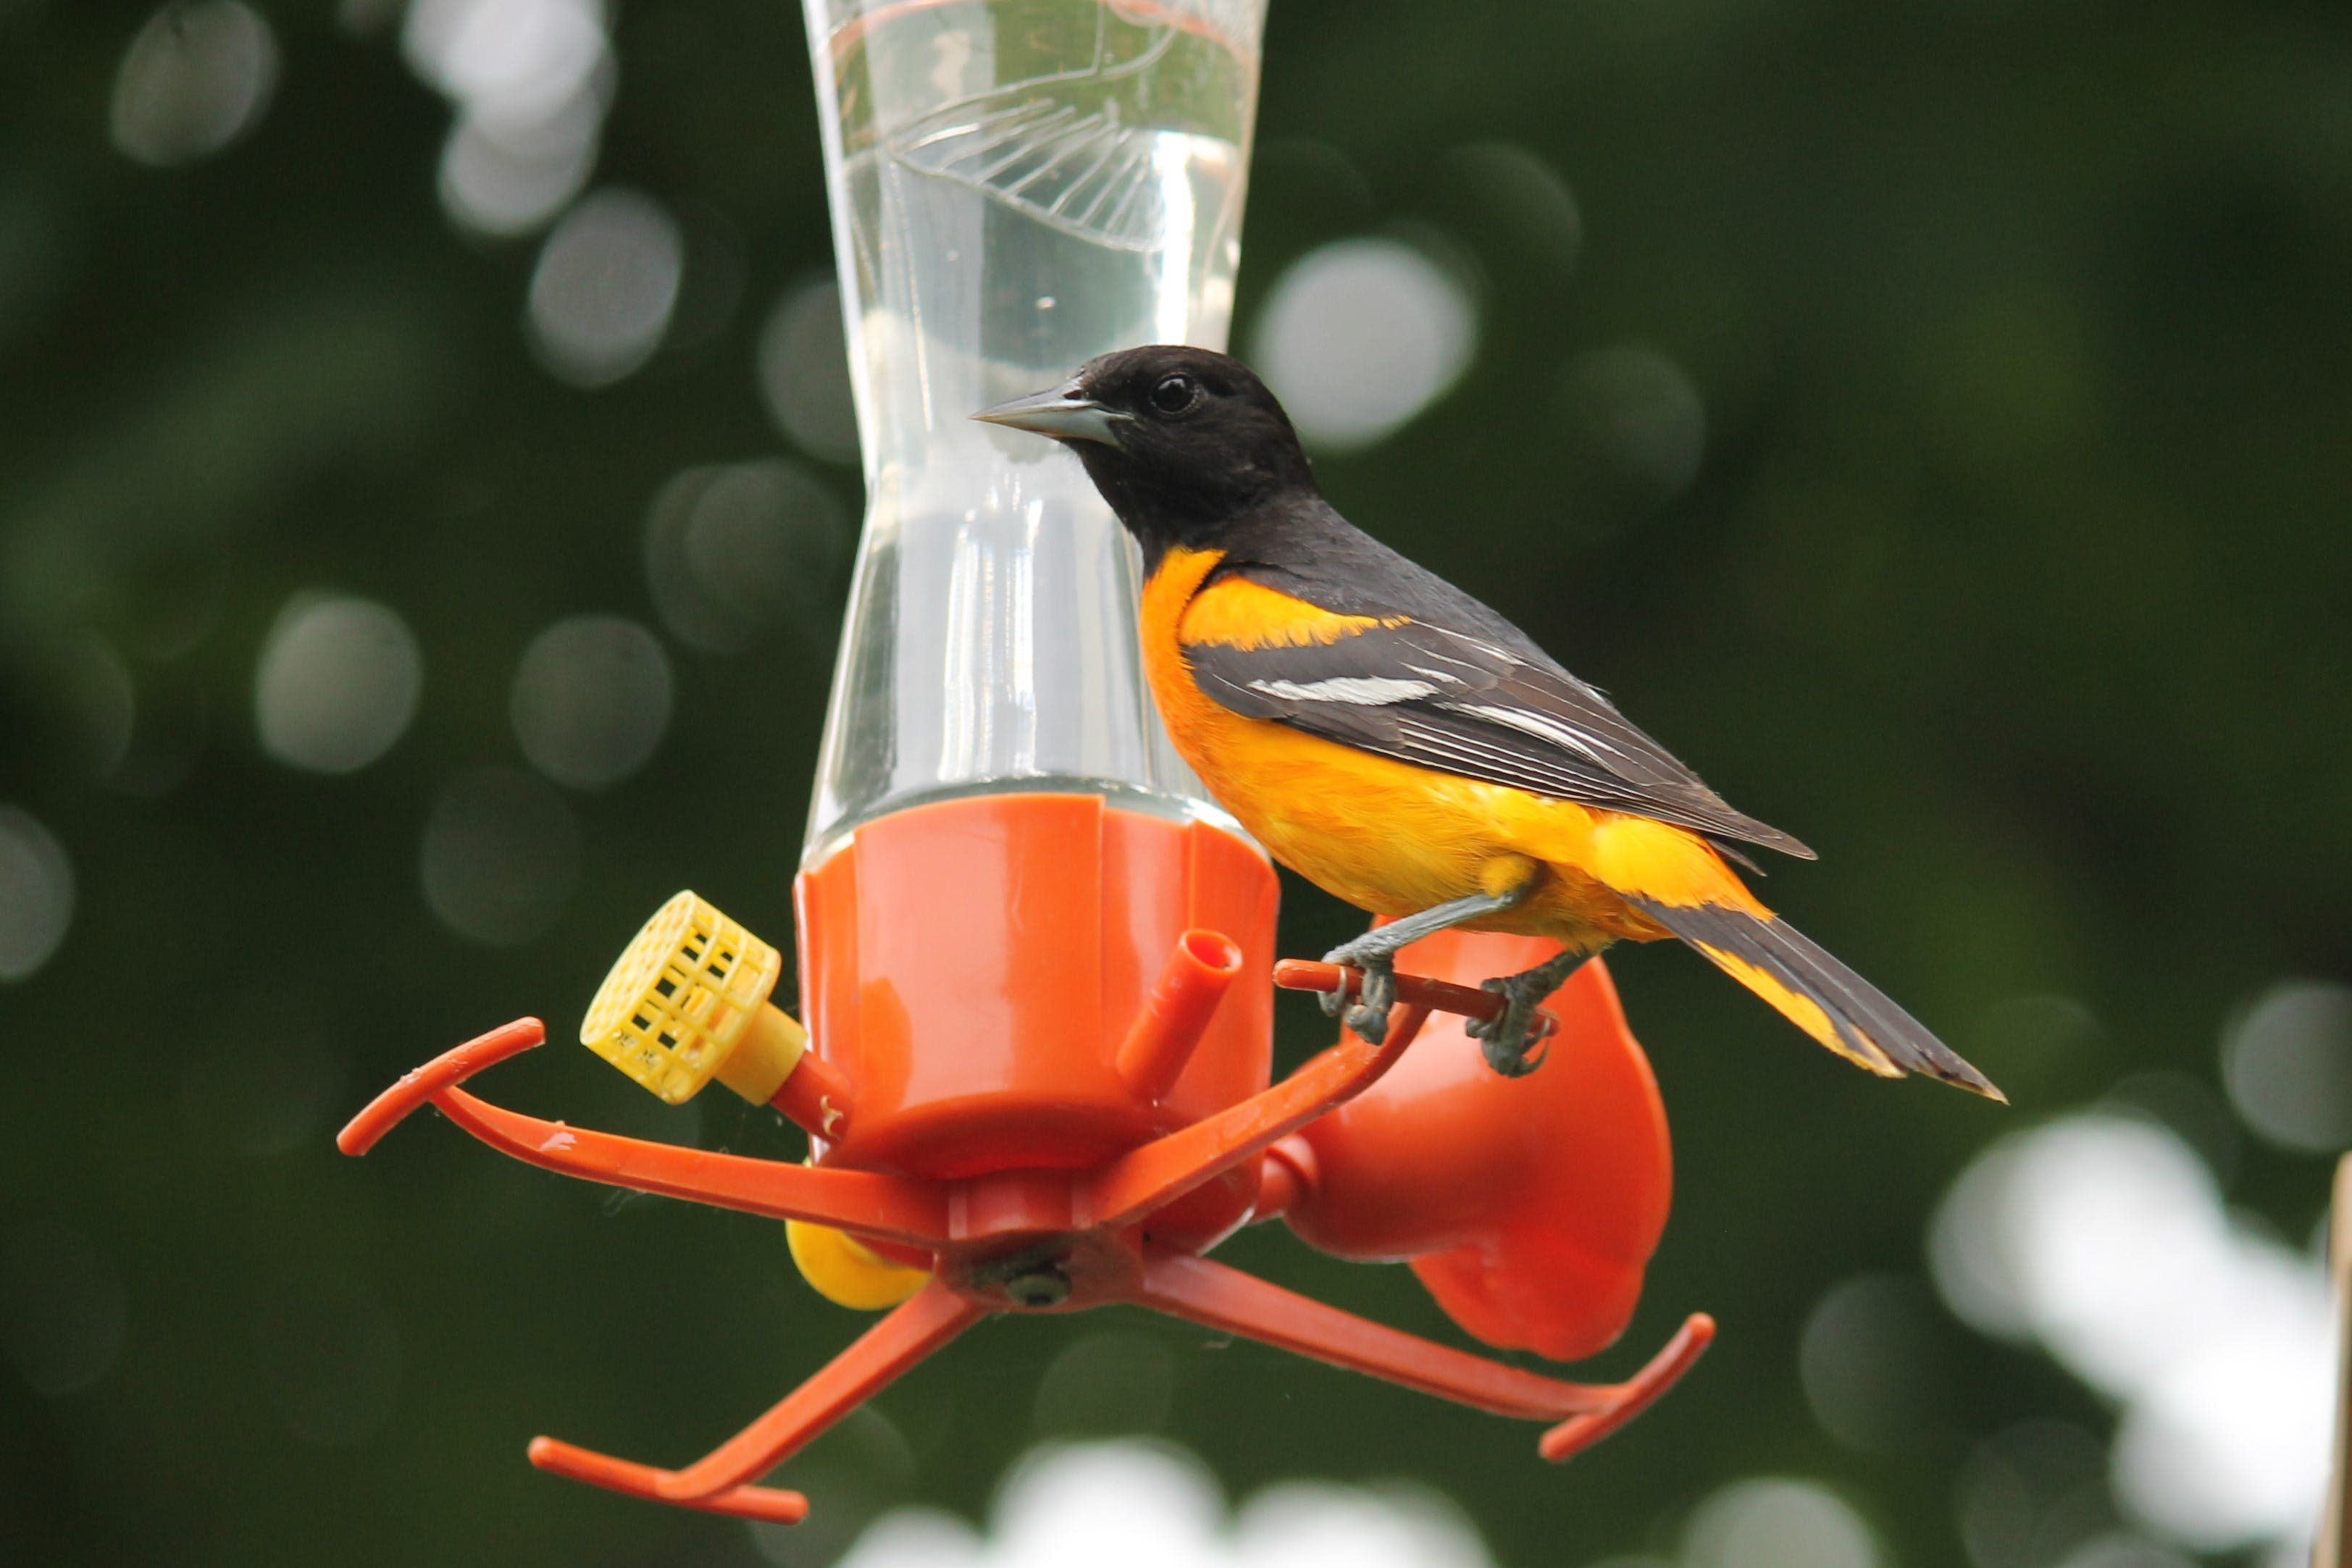 Free stock photo of #birds, nature photography, orioles, summer